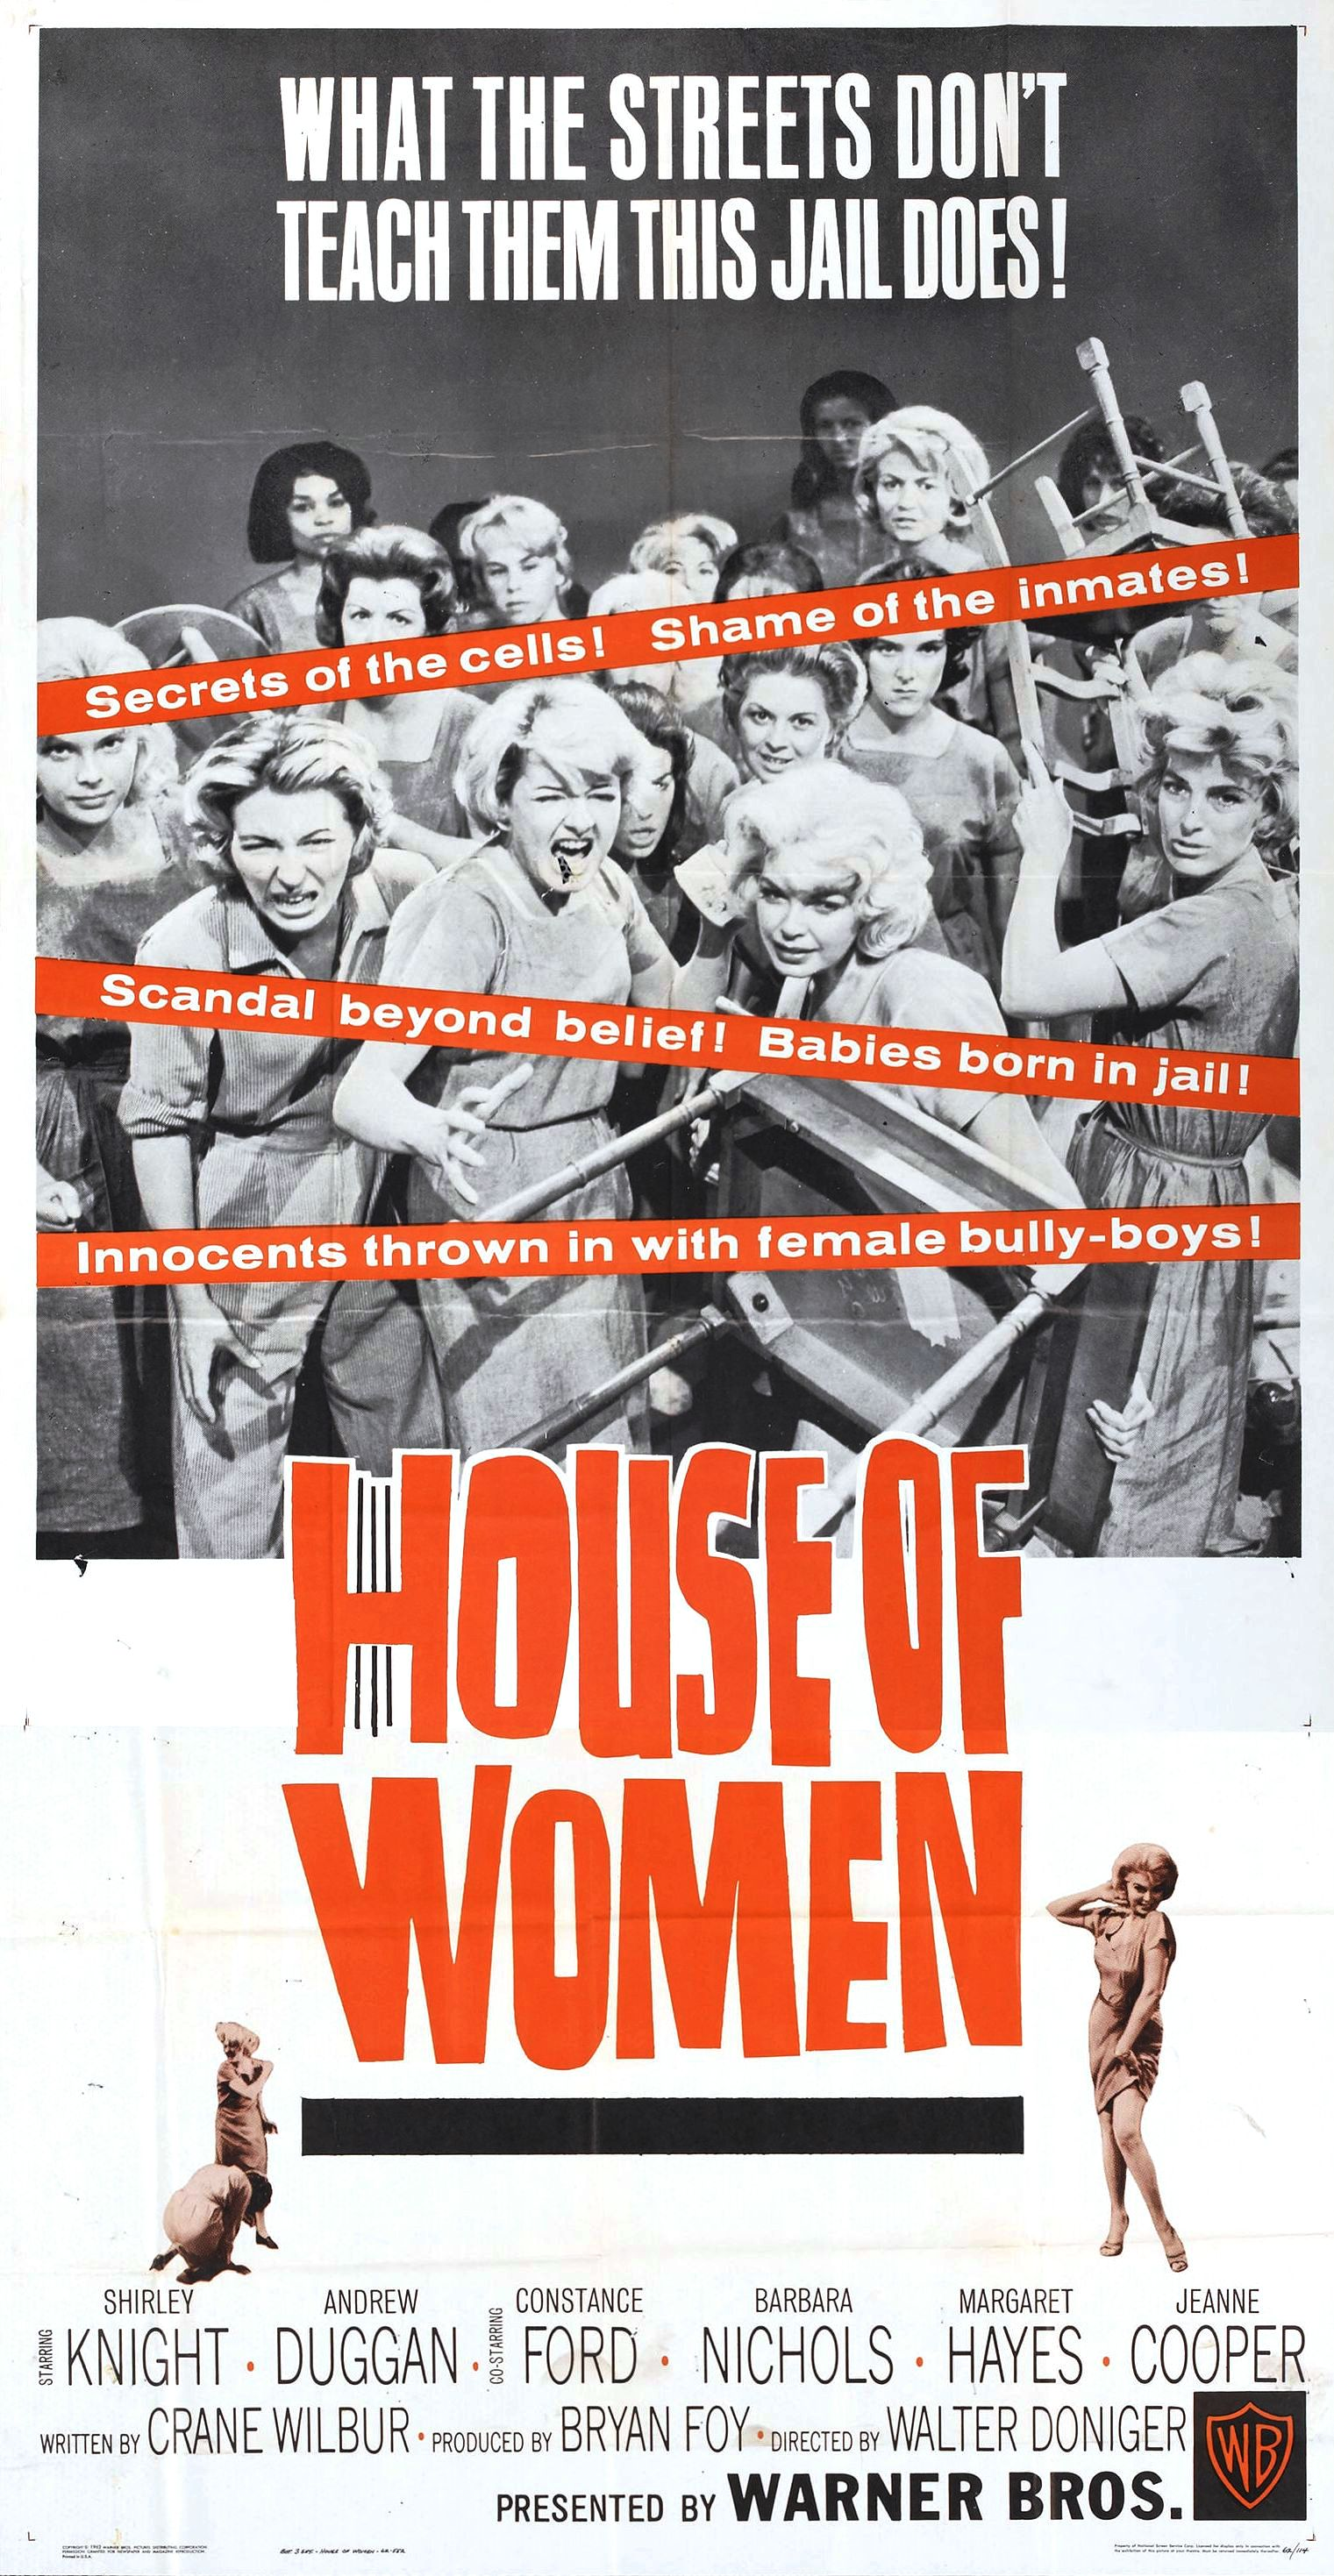 House of Women (1962)